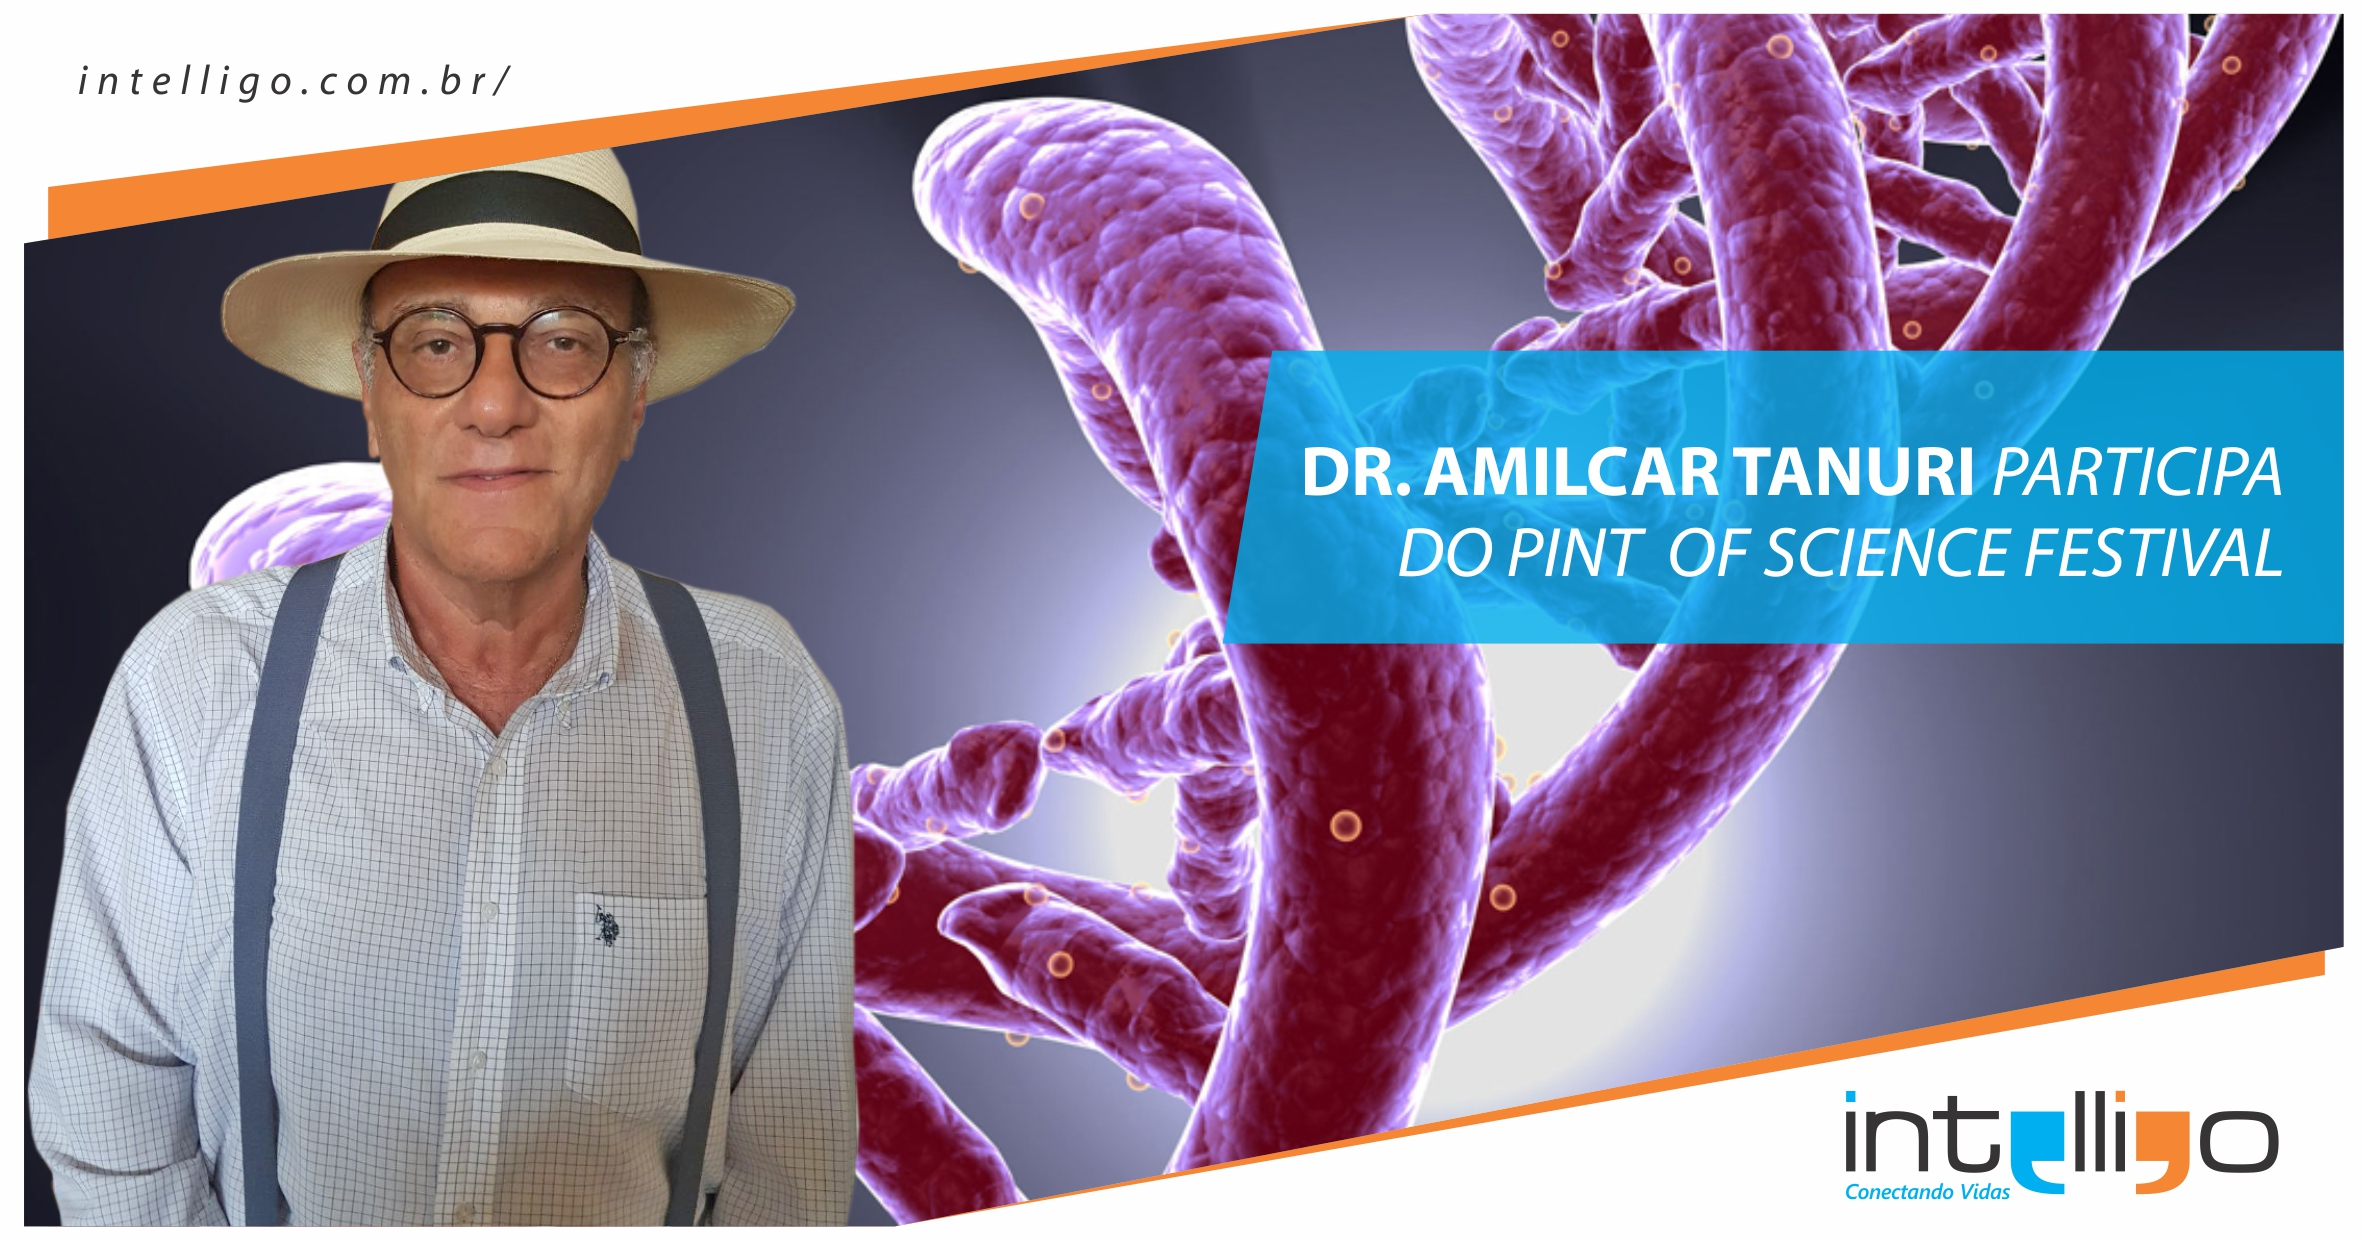 Dr. Amilcar Tanuri, Participará Do PINT OF SCIENCE FESTIVAL